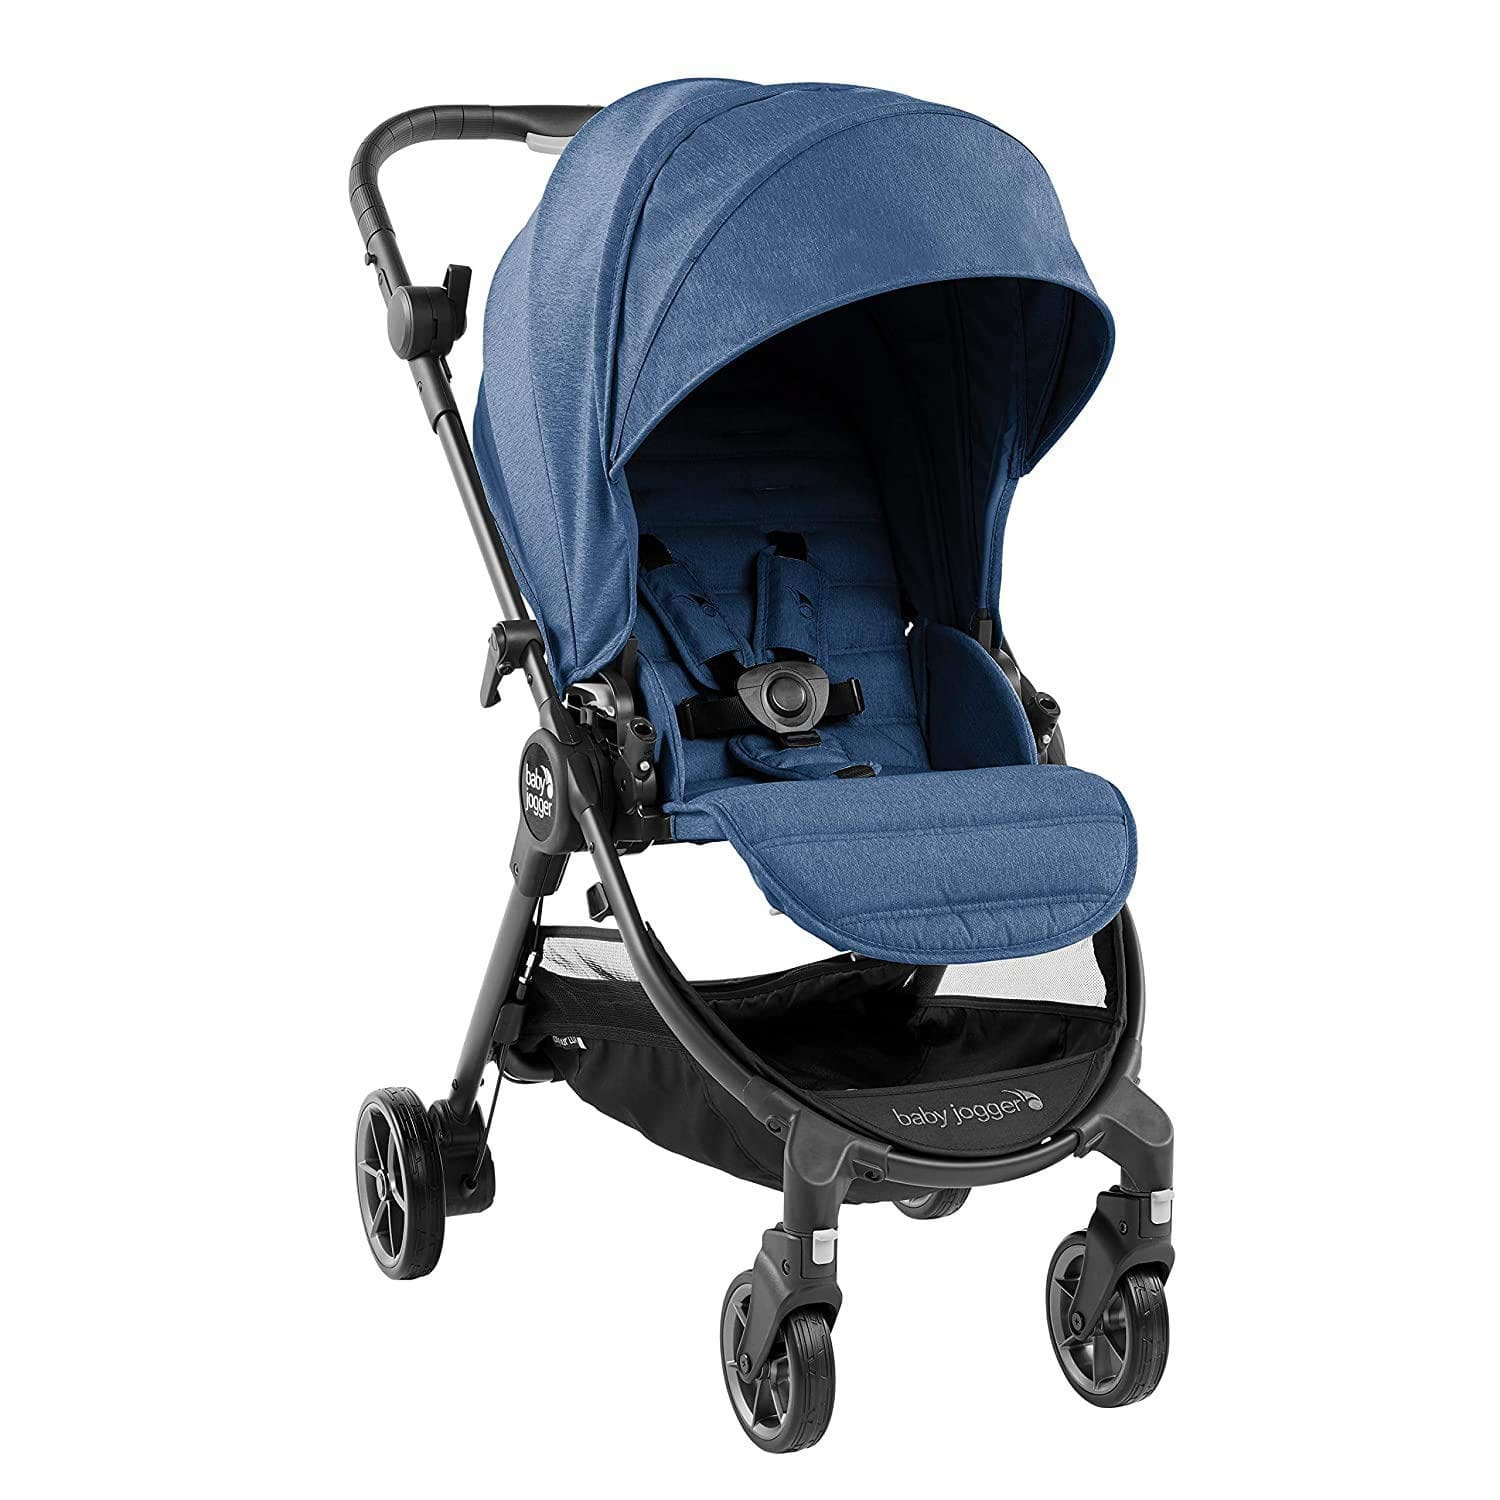 Baby Jogger City Tour Lux Stroller (Navy) $99 + 2.5% Slickdeals Cash Back (PC Req'd) + Free Shipping